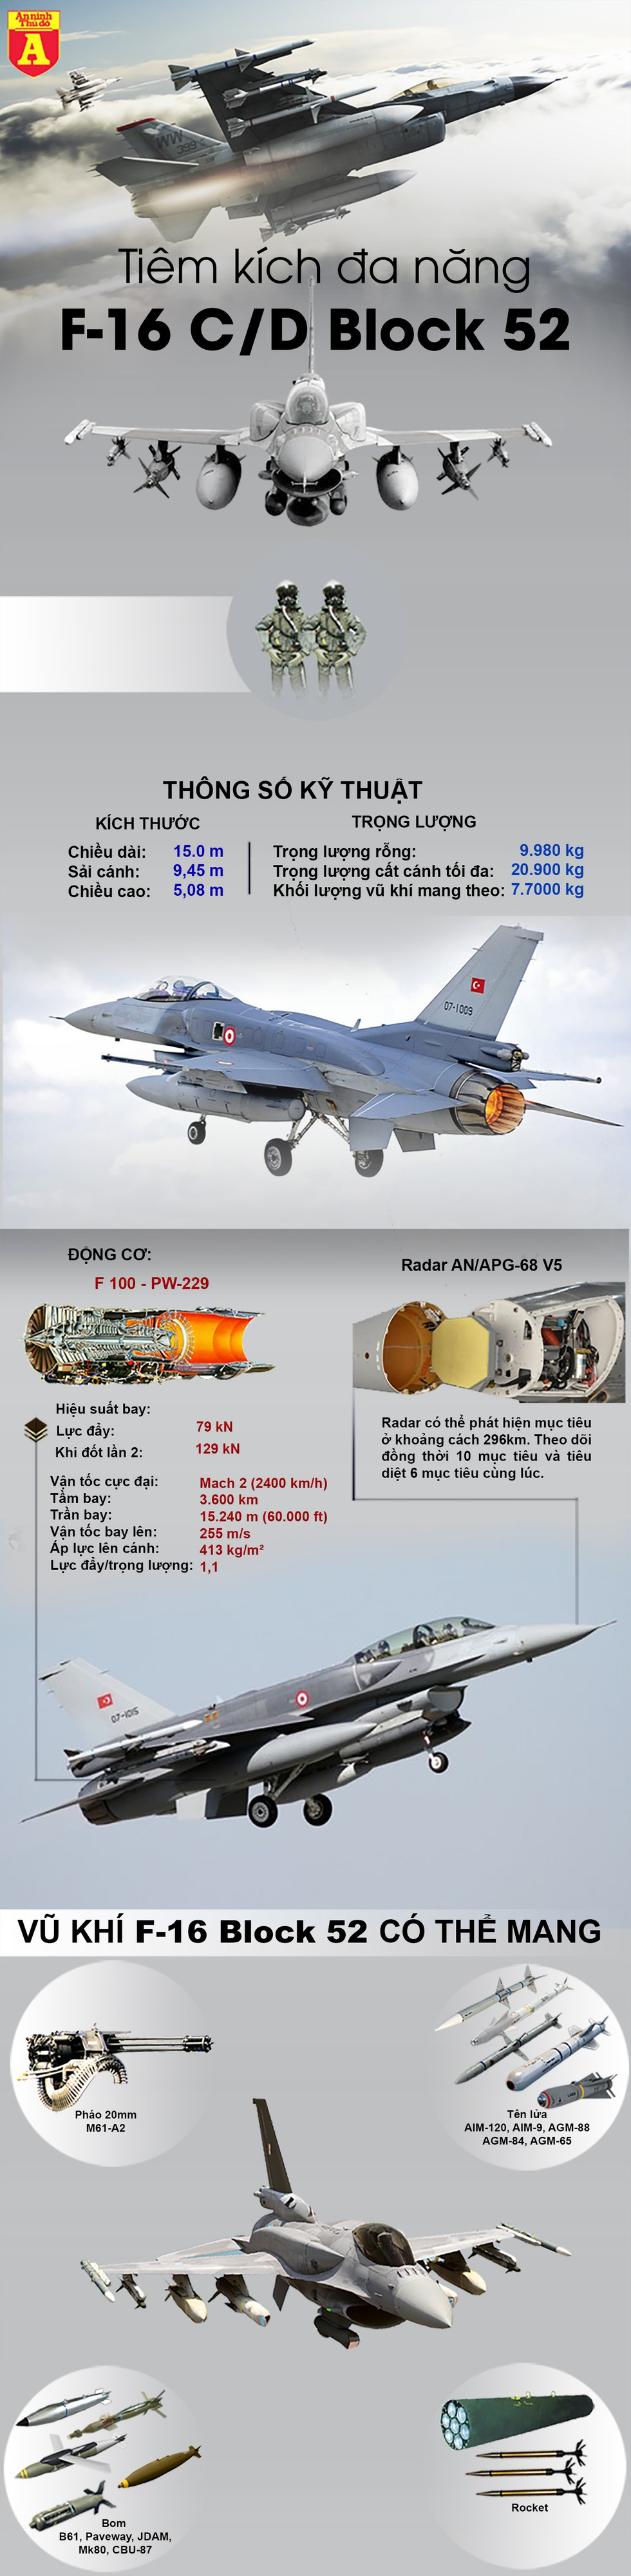 "infographic: tho nhi ky dang co bien the nao cua ""chien than"" f-16? hinh anh 1"